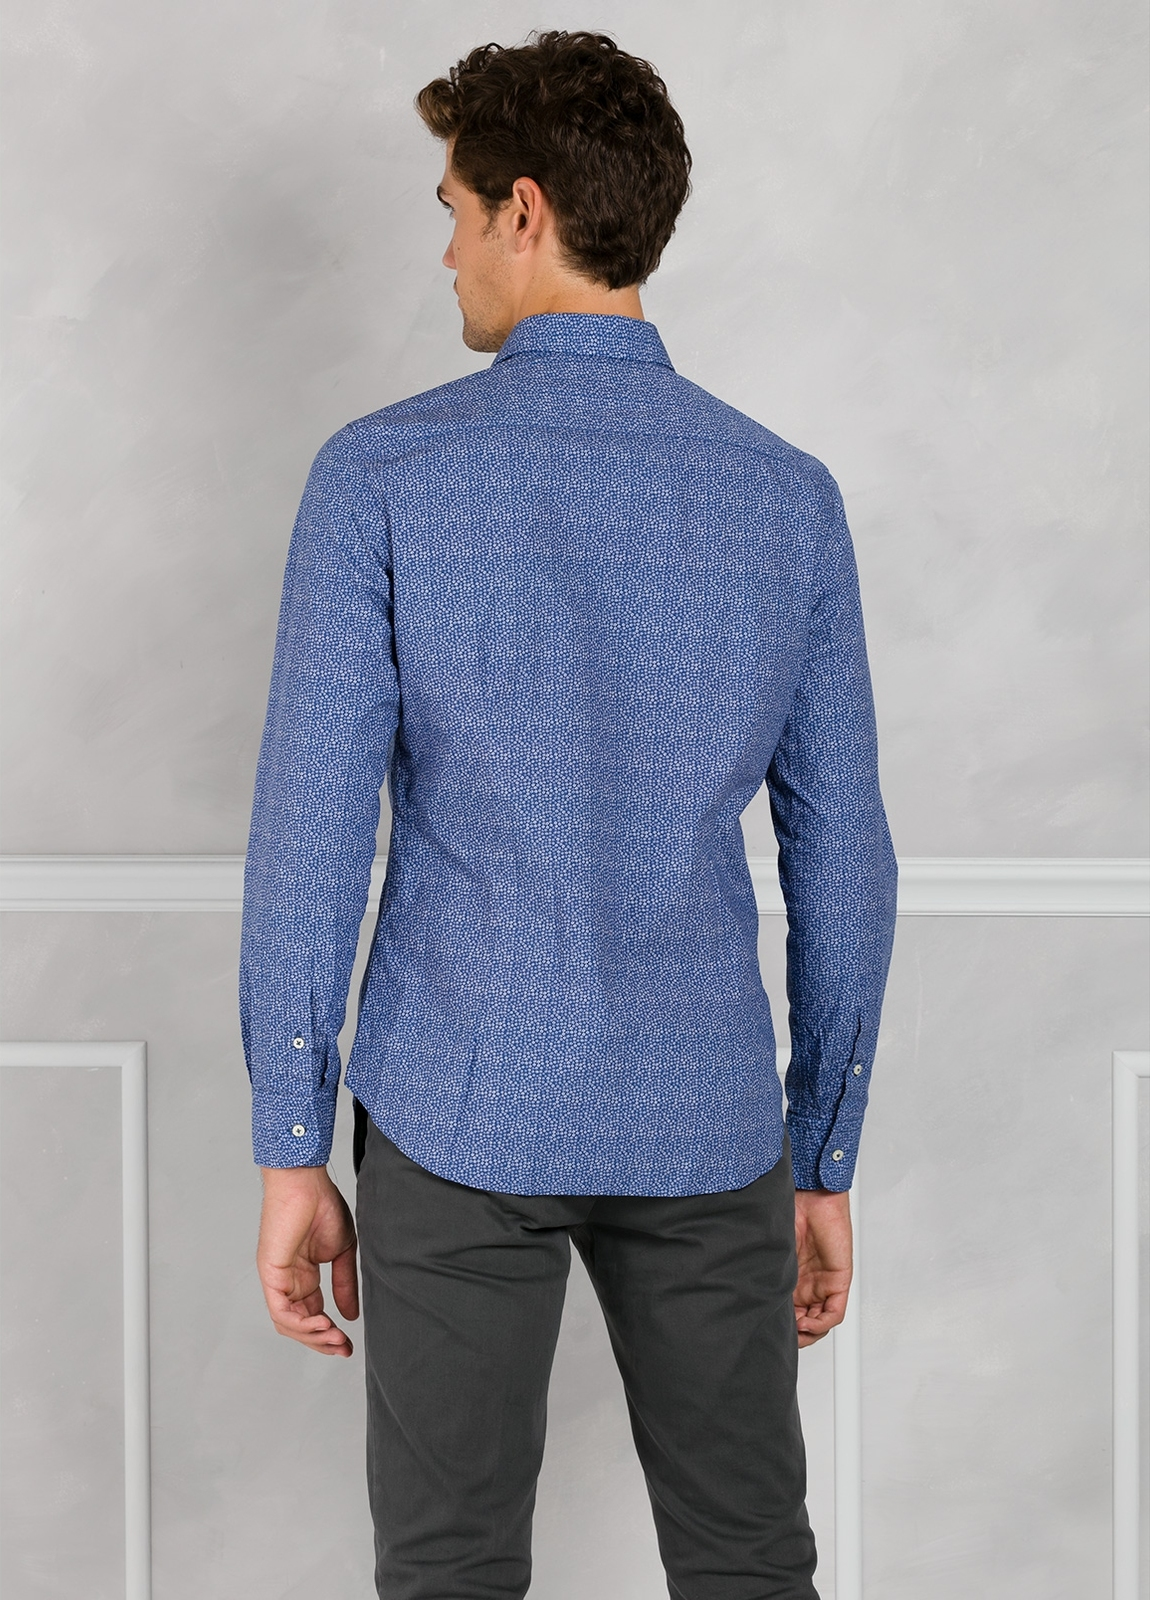 Camisa Leisure Wear SLIM FIT modelo PORTO micro dibujo color azul. 100% Algodón. - Ítem1